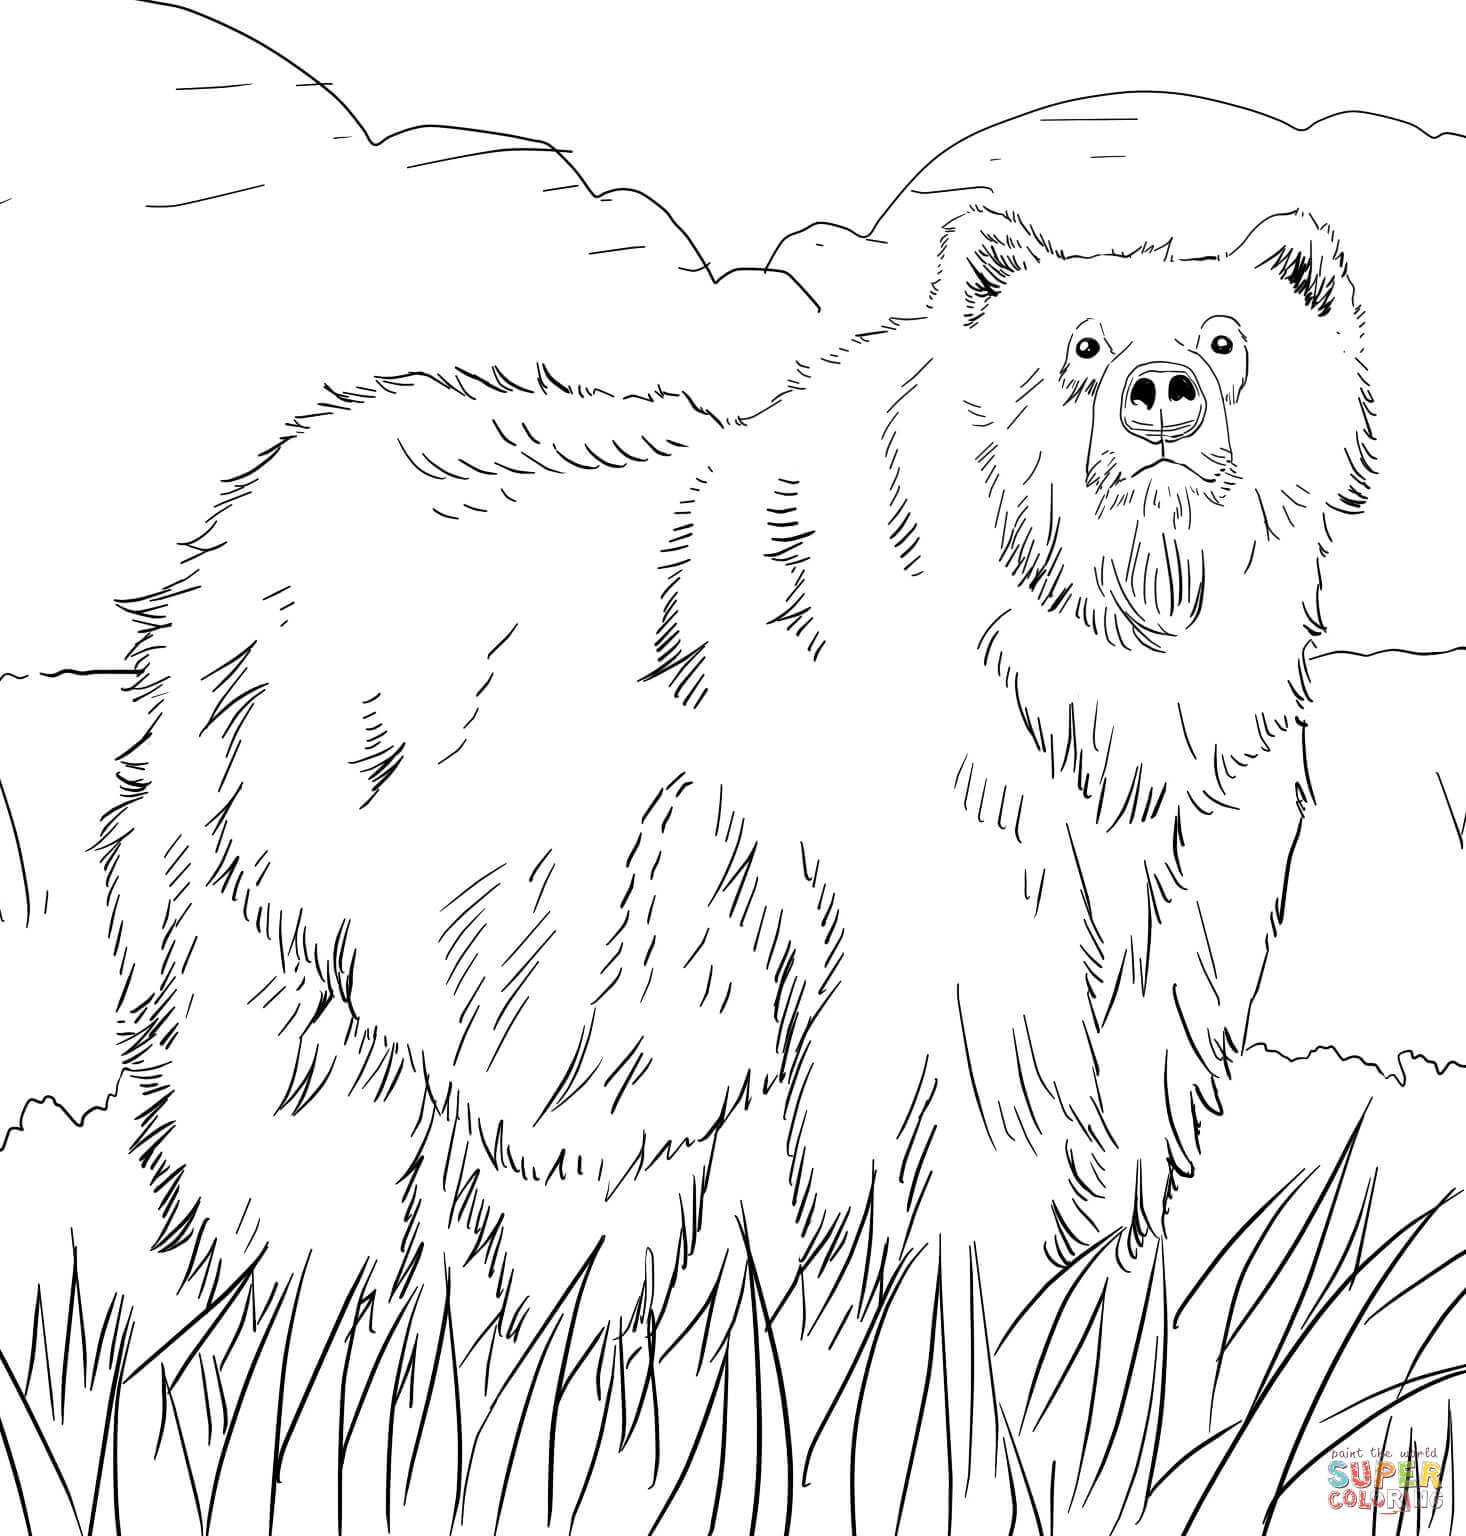 Printable Coloring Pages Woodland Animals : Free Woodland Creature Coloring Pages AZ Coloring Pages